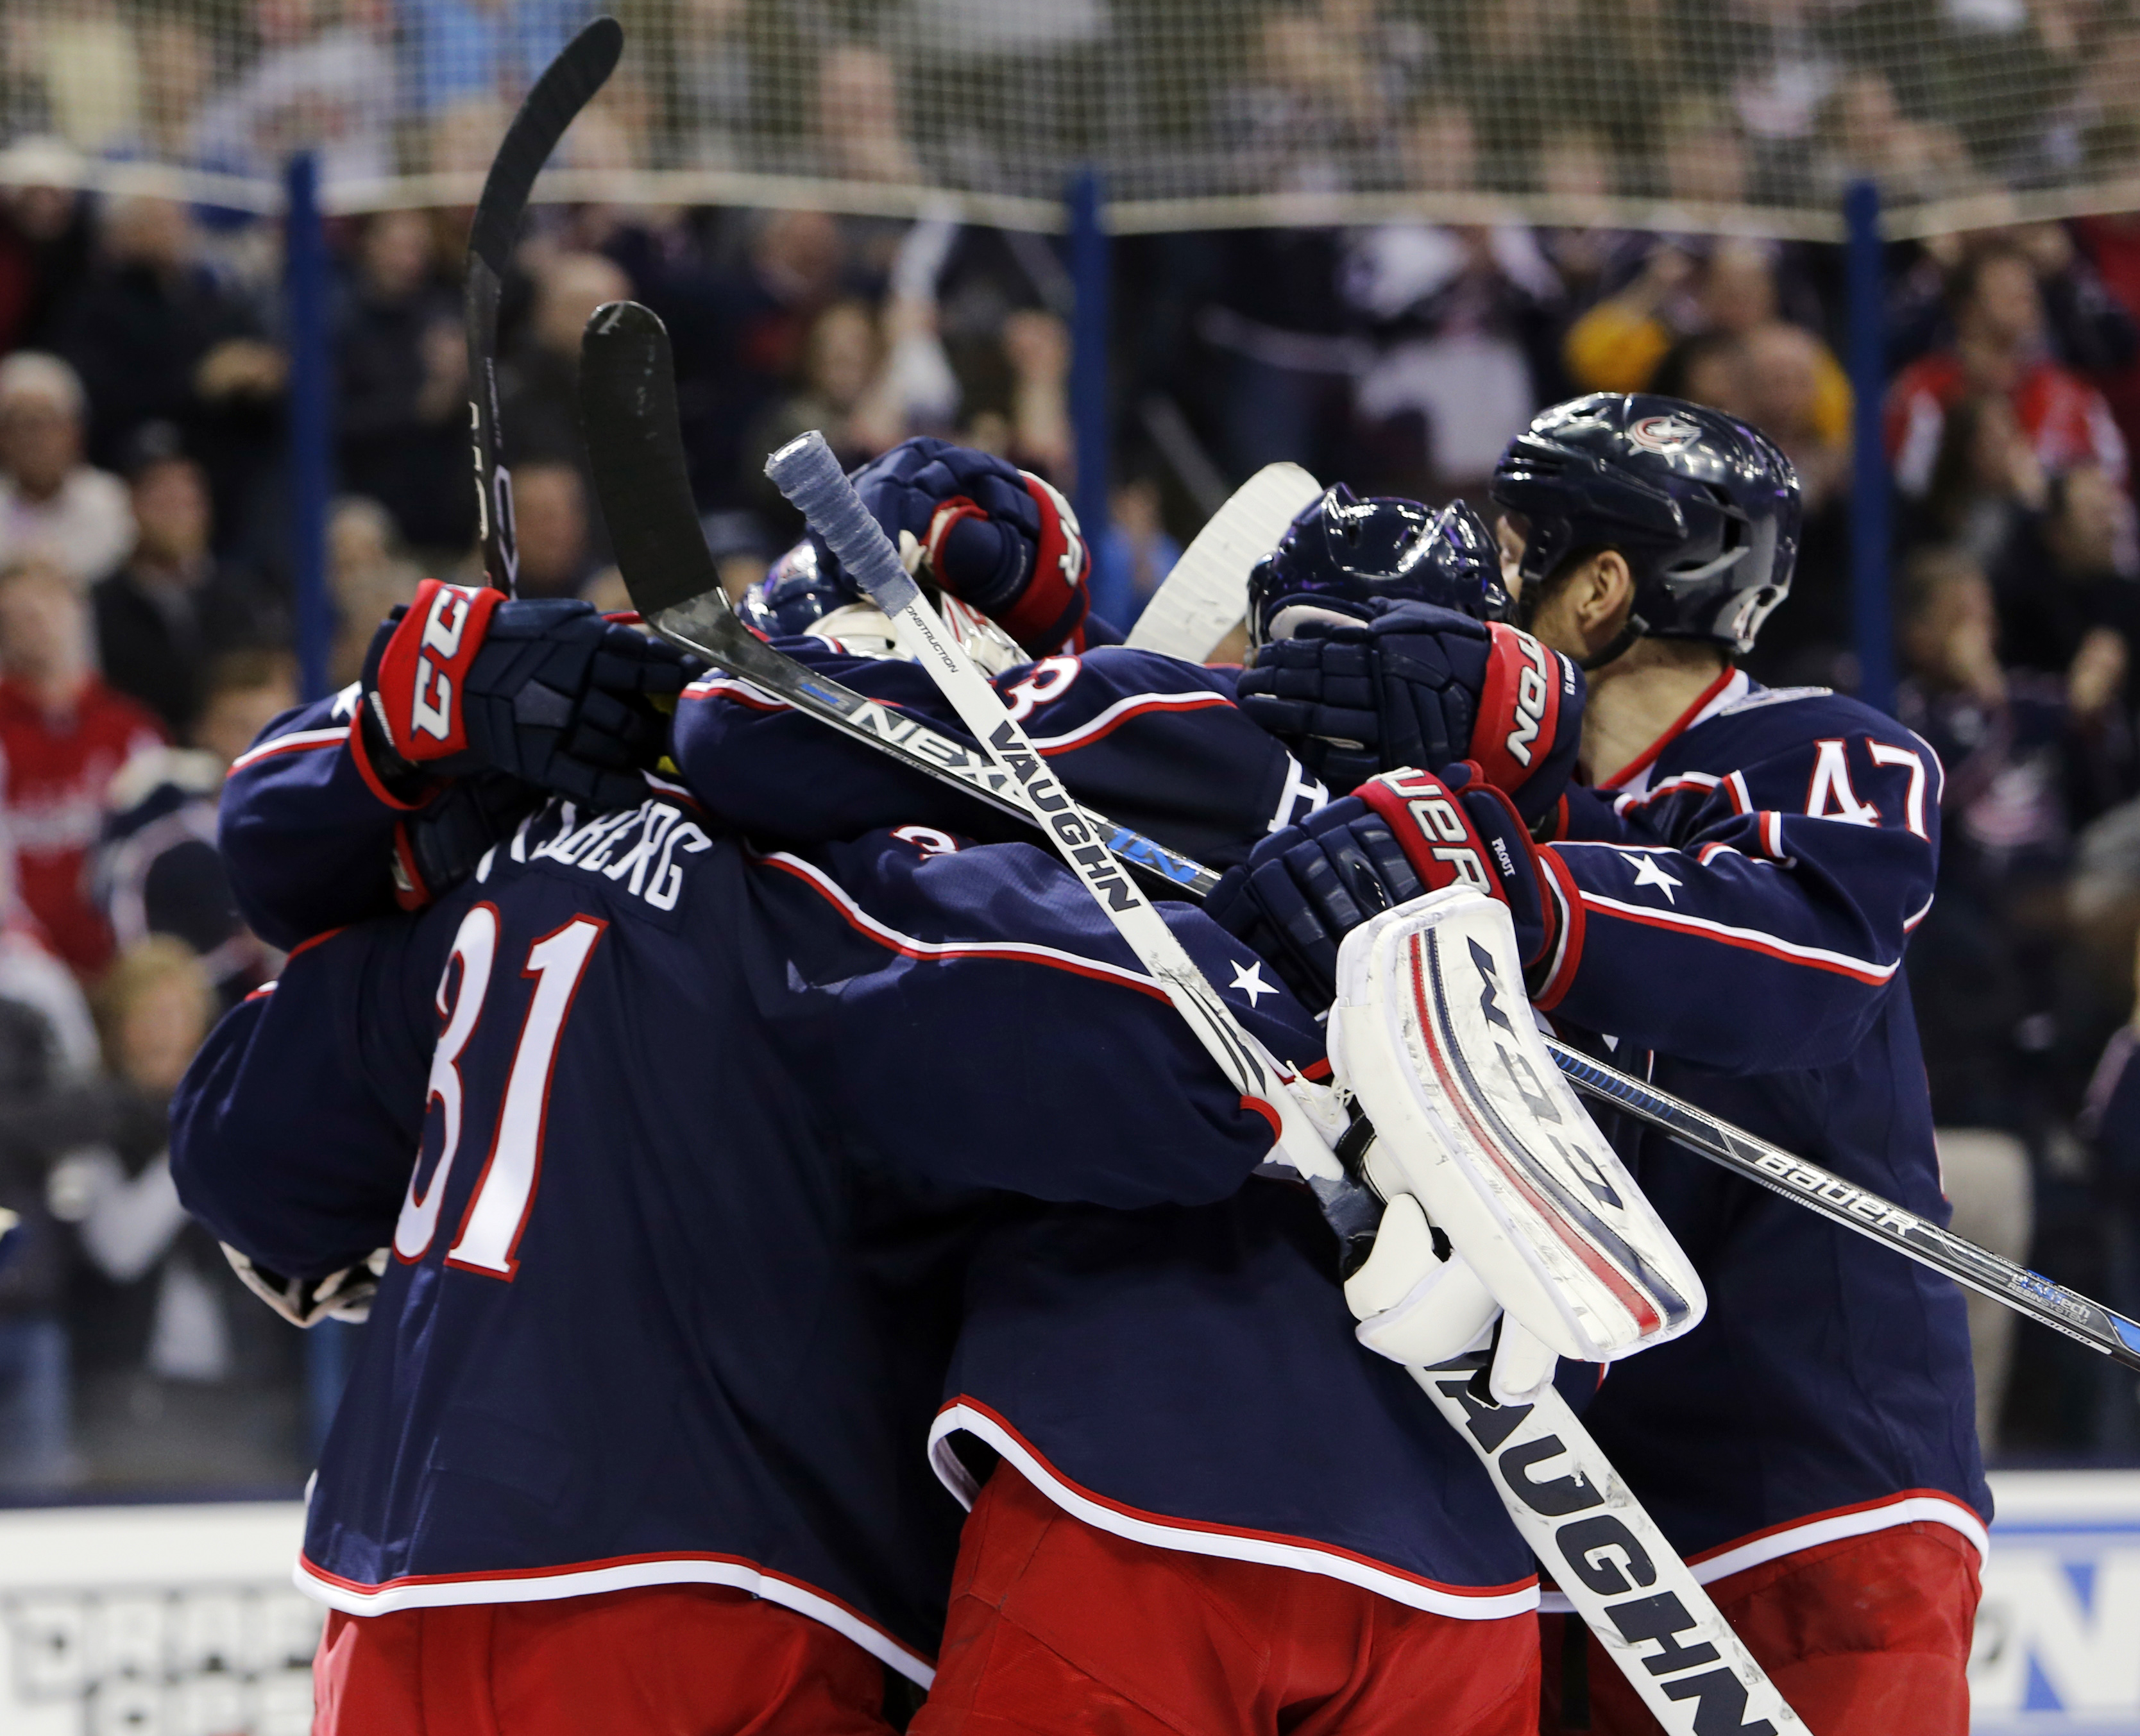 Columbus Blue Jackets' Anton Forsberg, left, of Sweden, is congratulated by teammates after making the final save of the shootout against the Washington Capitals in an NHL hockey game Saturday, Jan. 2, 2016, in Columbus, Ohio. Forsberg entered the game af